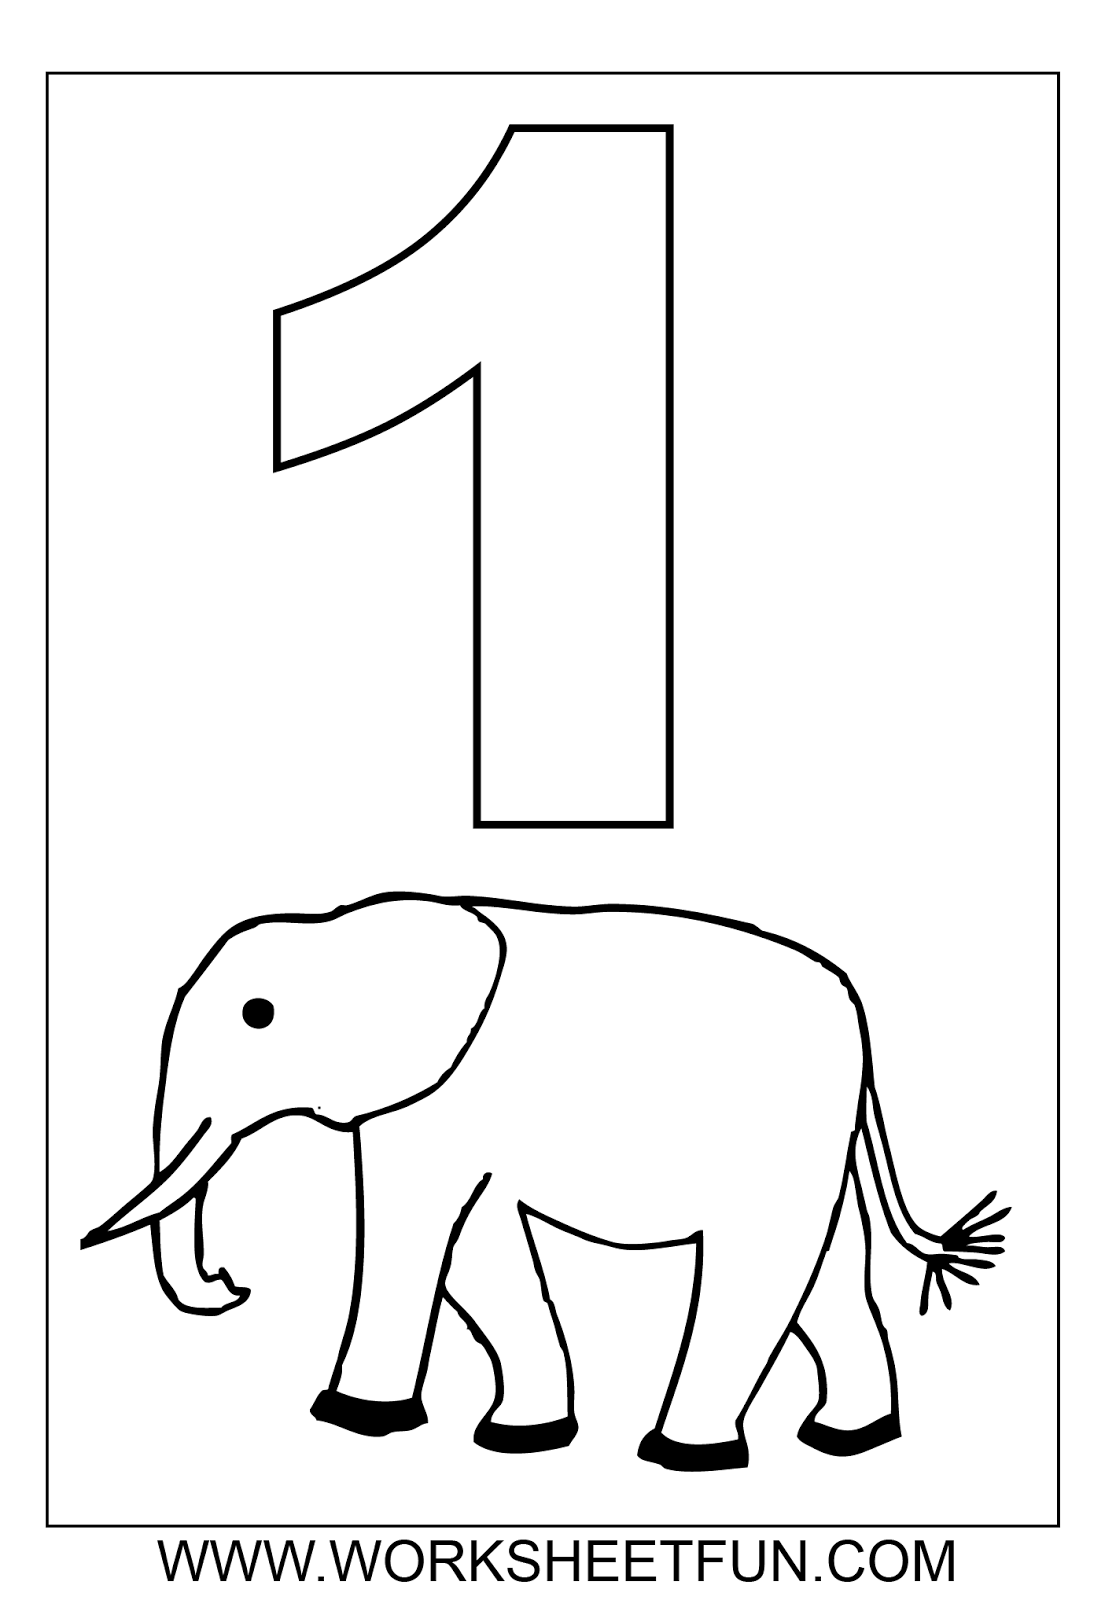 13 Best Images Of Number 1 Worksheets To Print